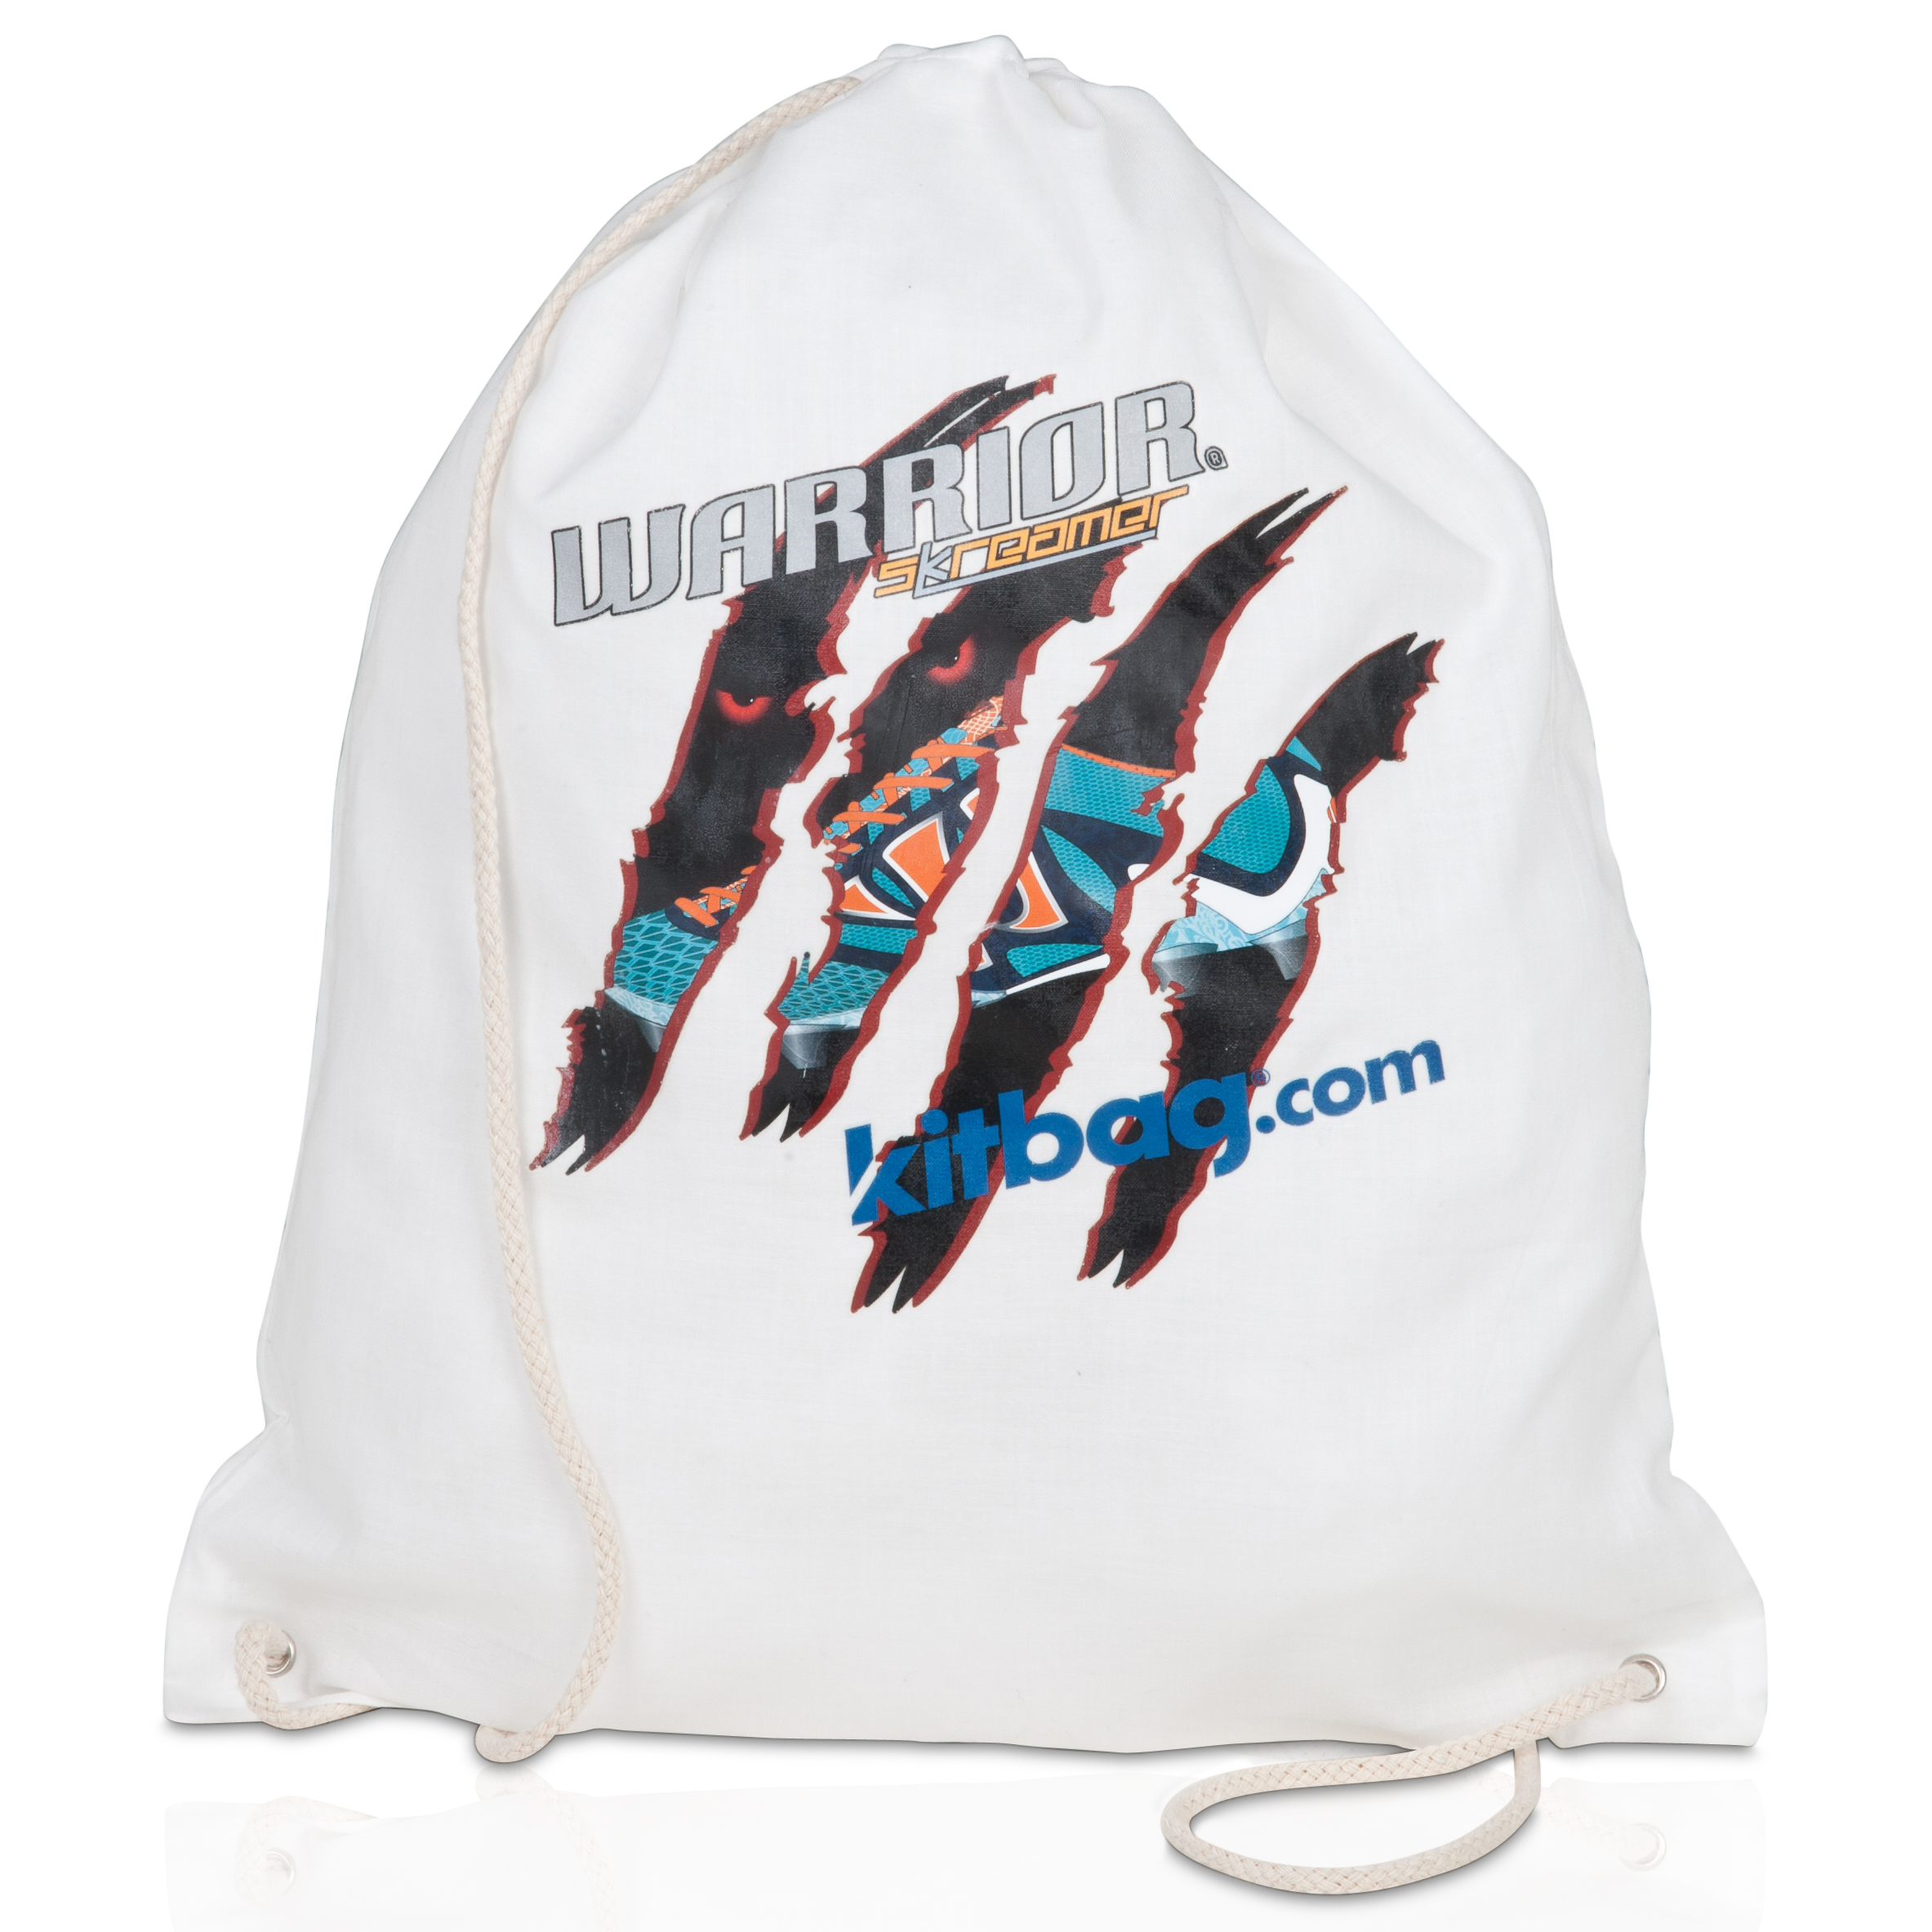 Warrior Skreamer Kitbag Gymsac - White